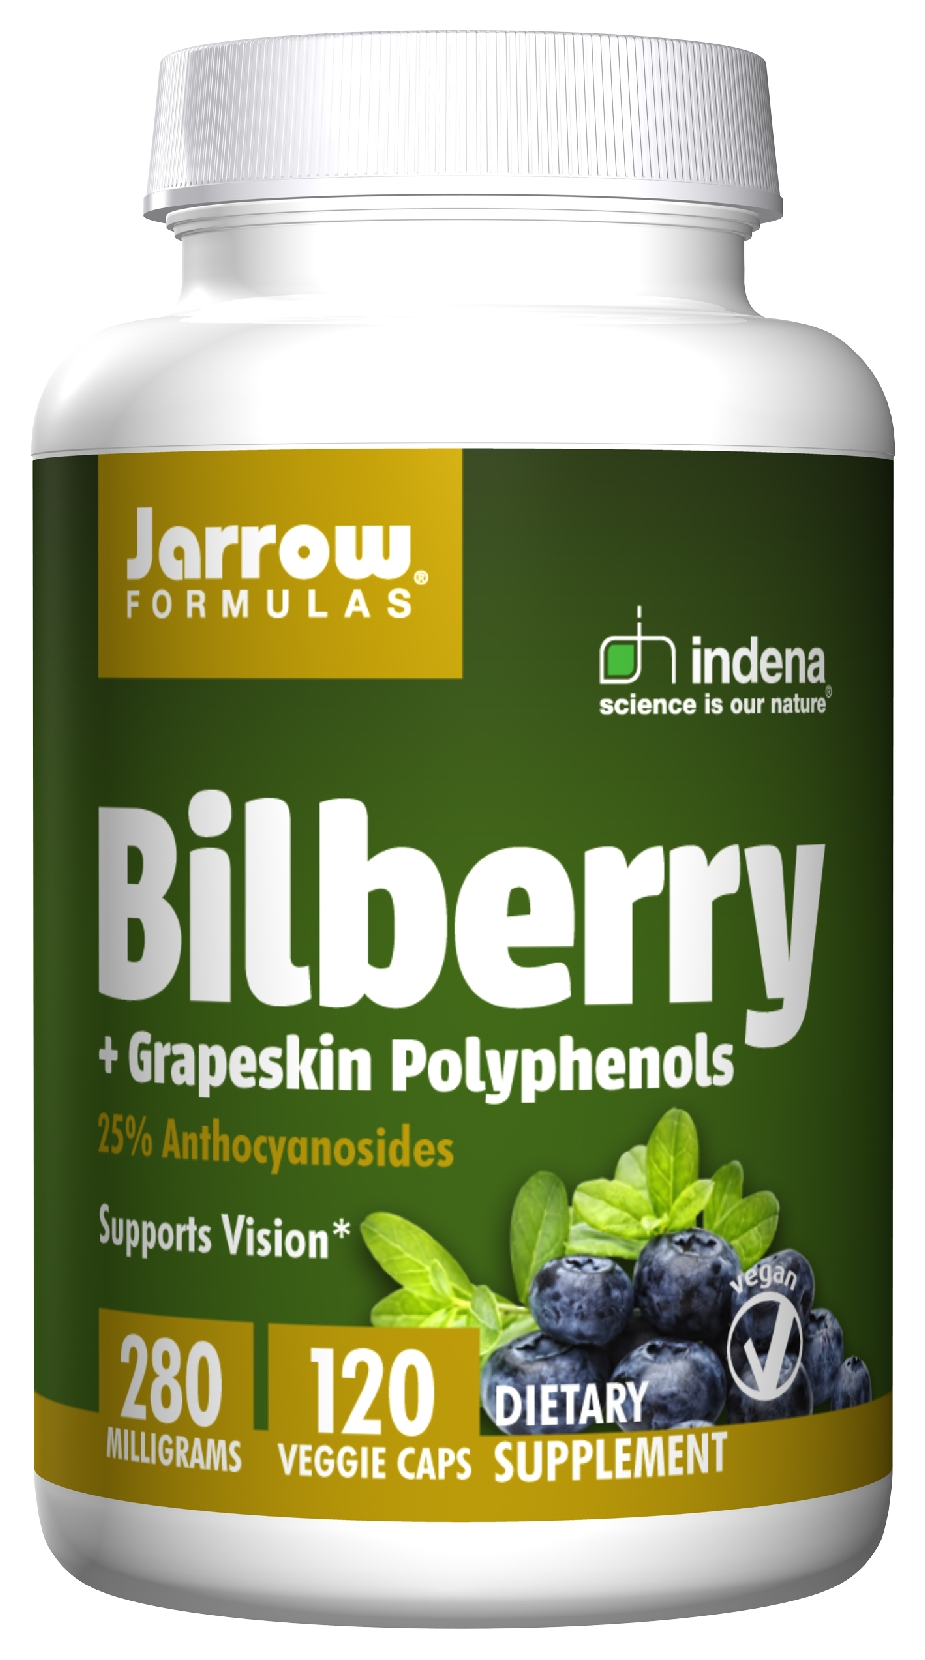 Bilberry + Grapeskin Polyphenols 280 mg 120 Vegetarian caps by Jarrow Formulas